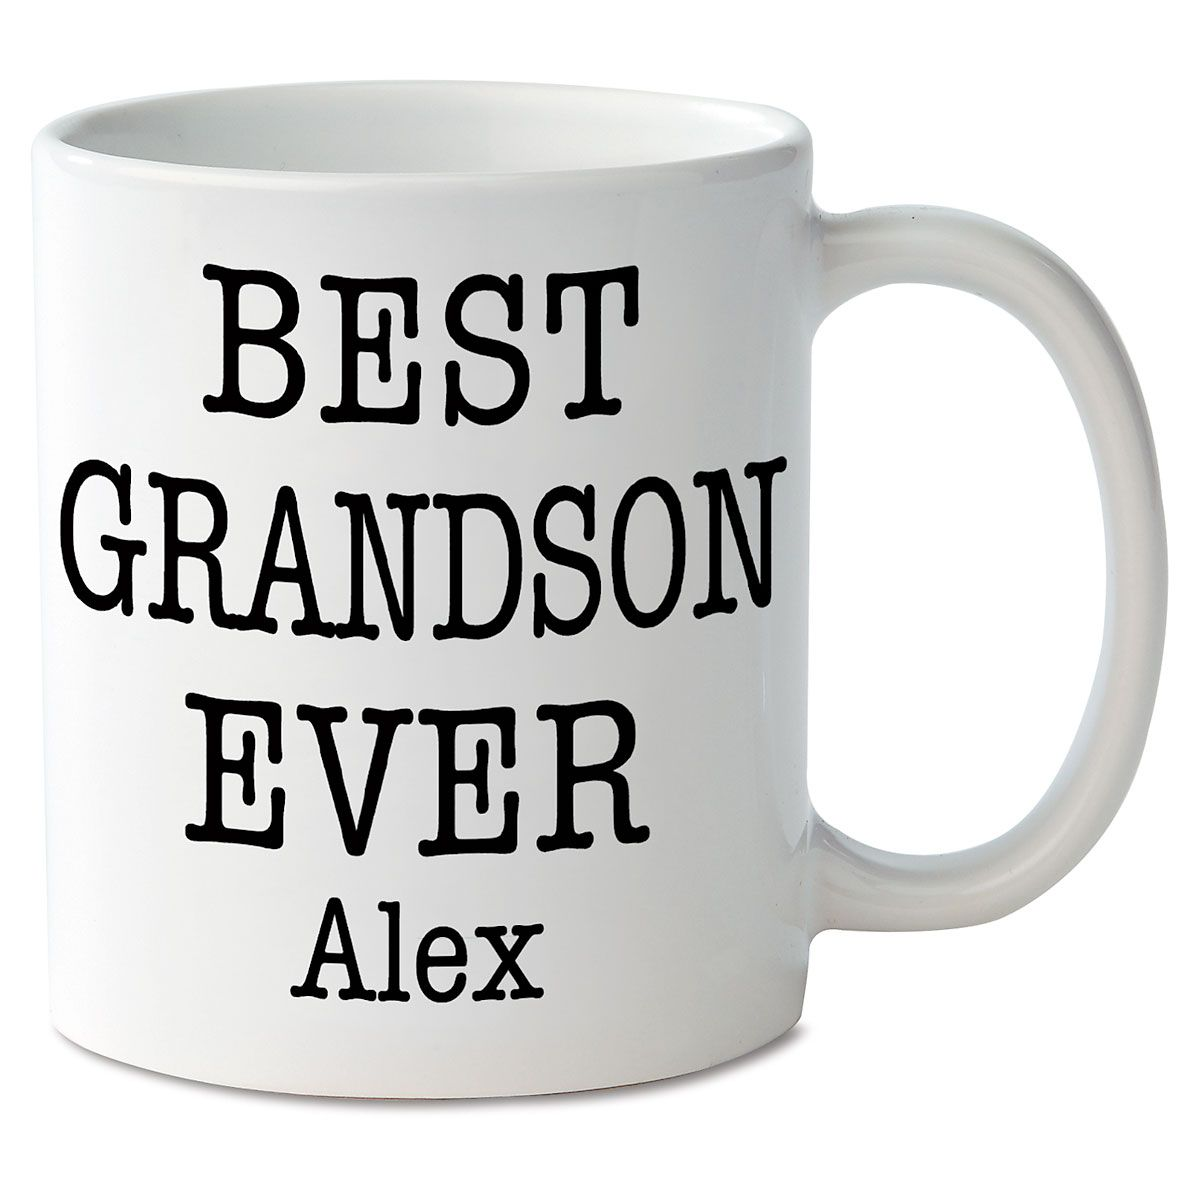 Best Grandson Ever Mug